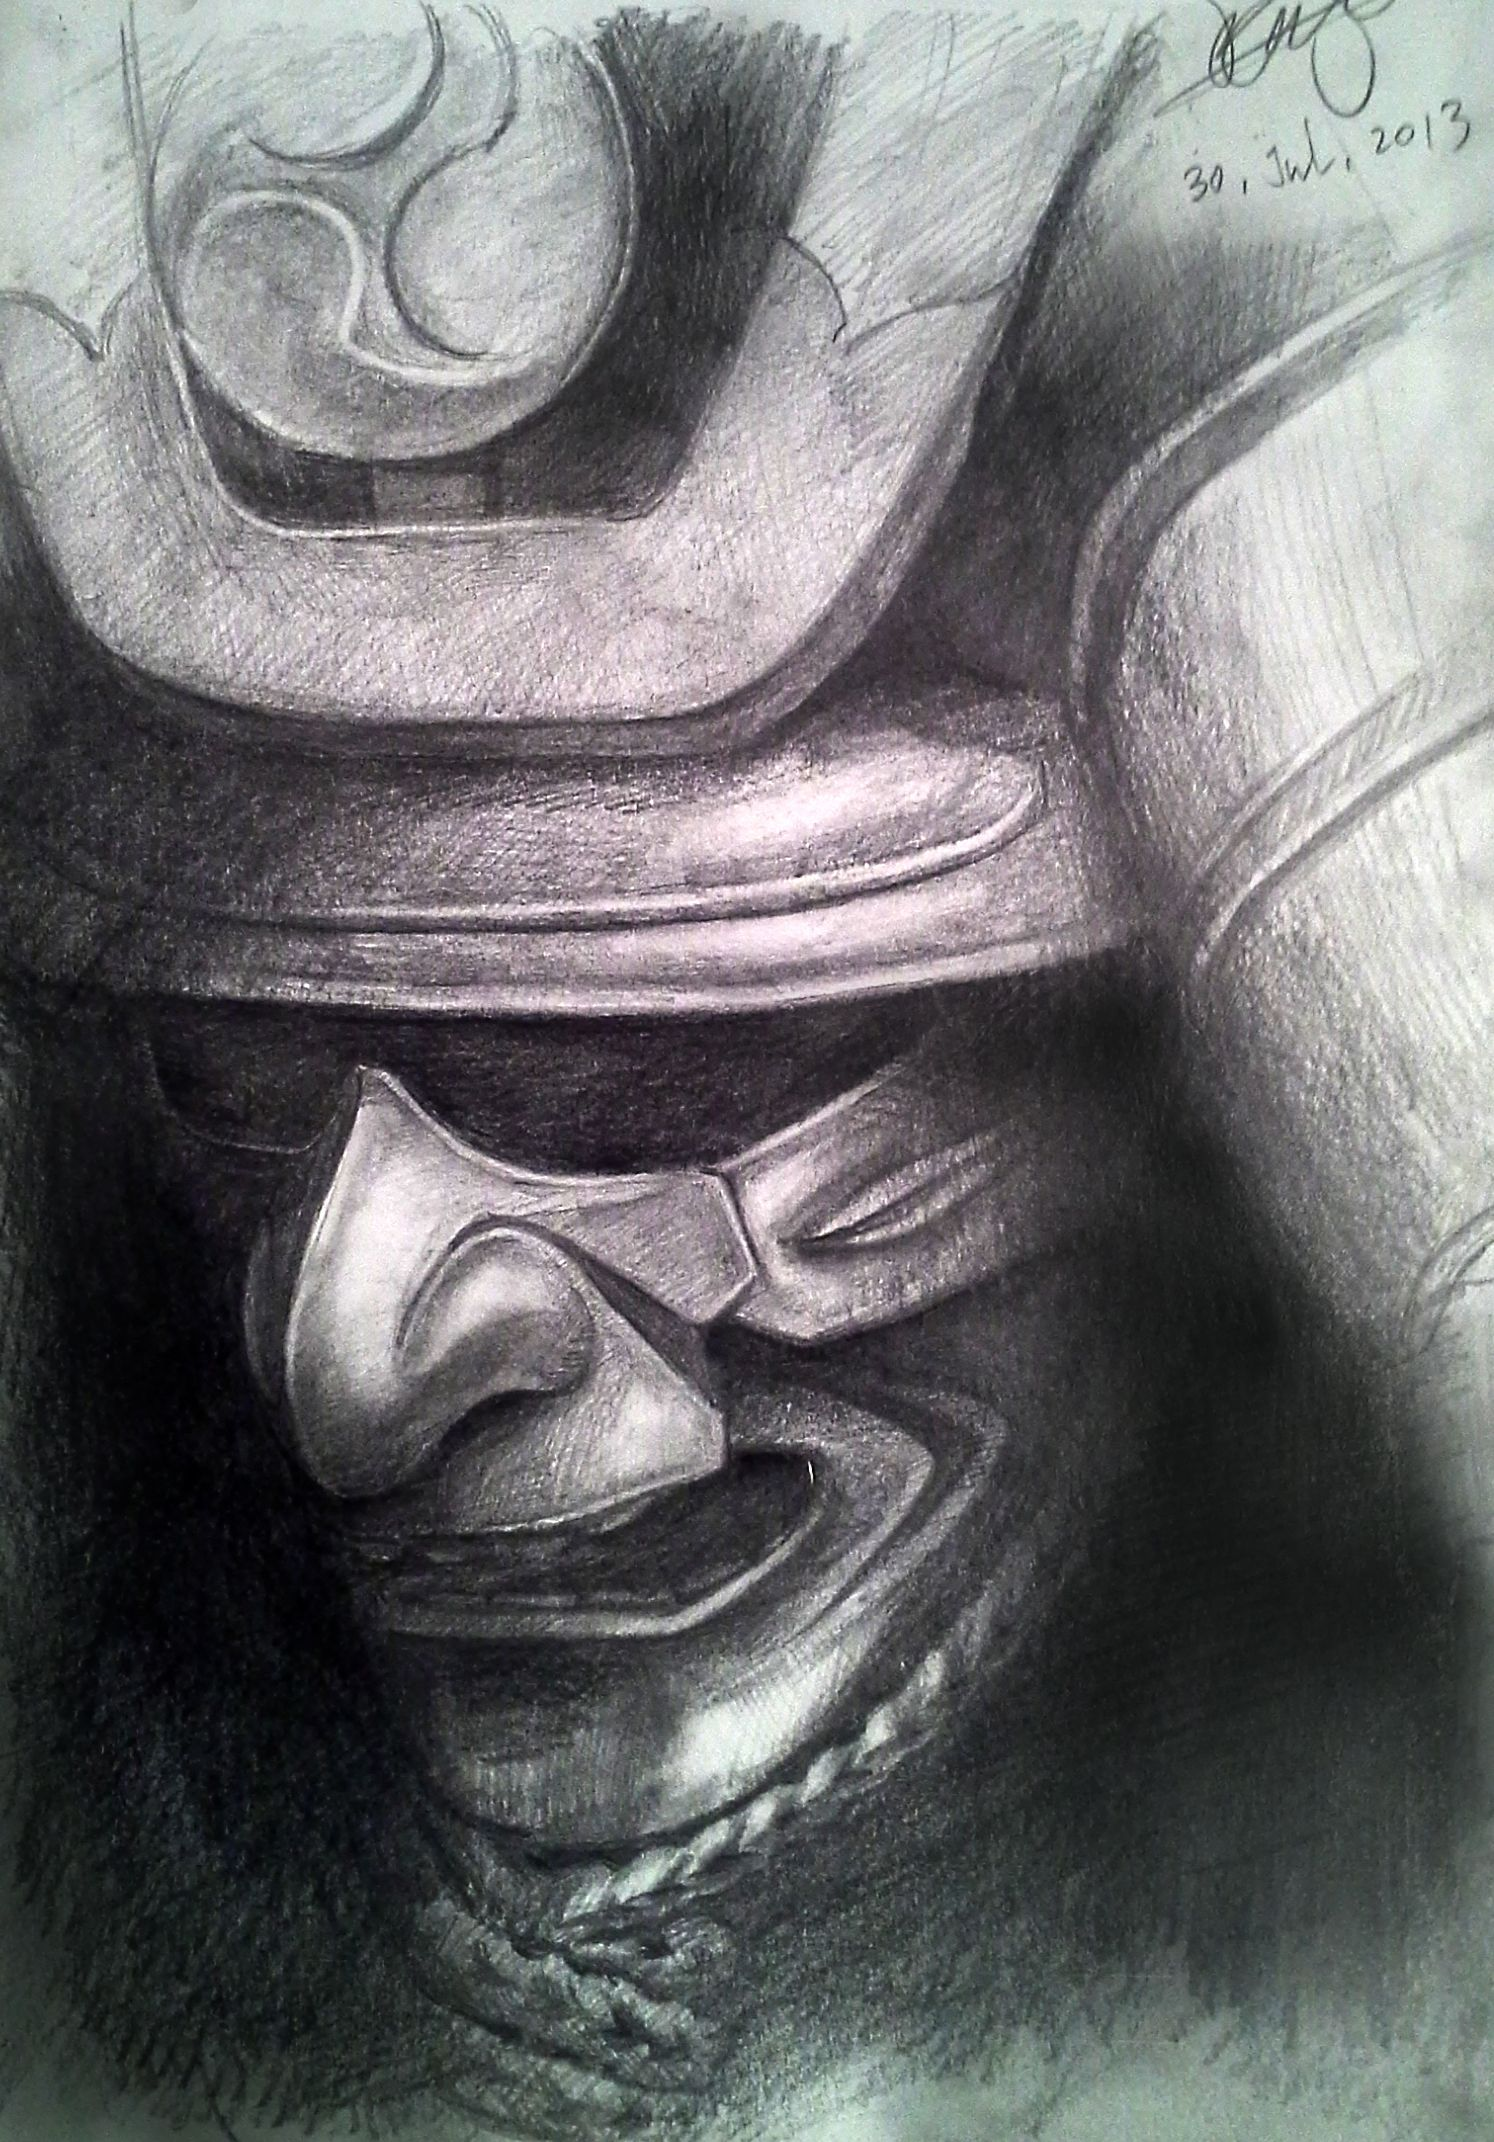 my samurai armor drawing | Samurai Art | Pinterest ...